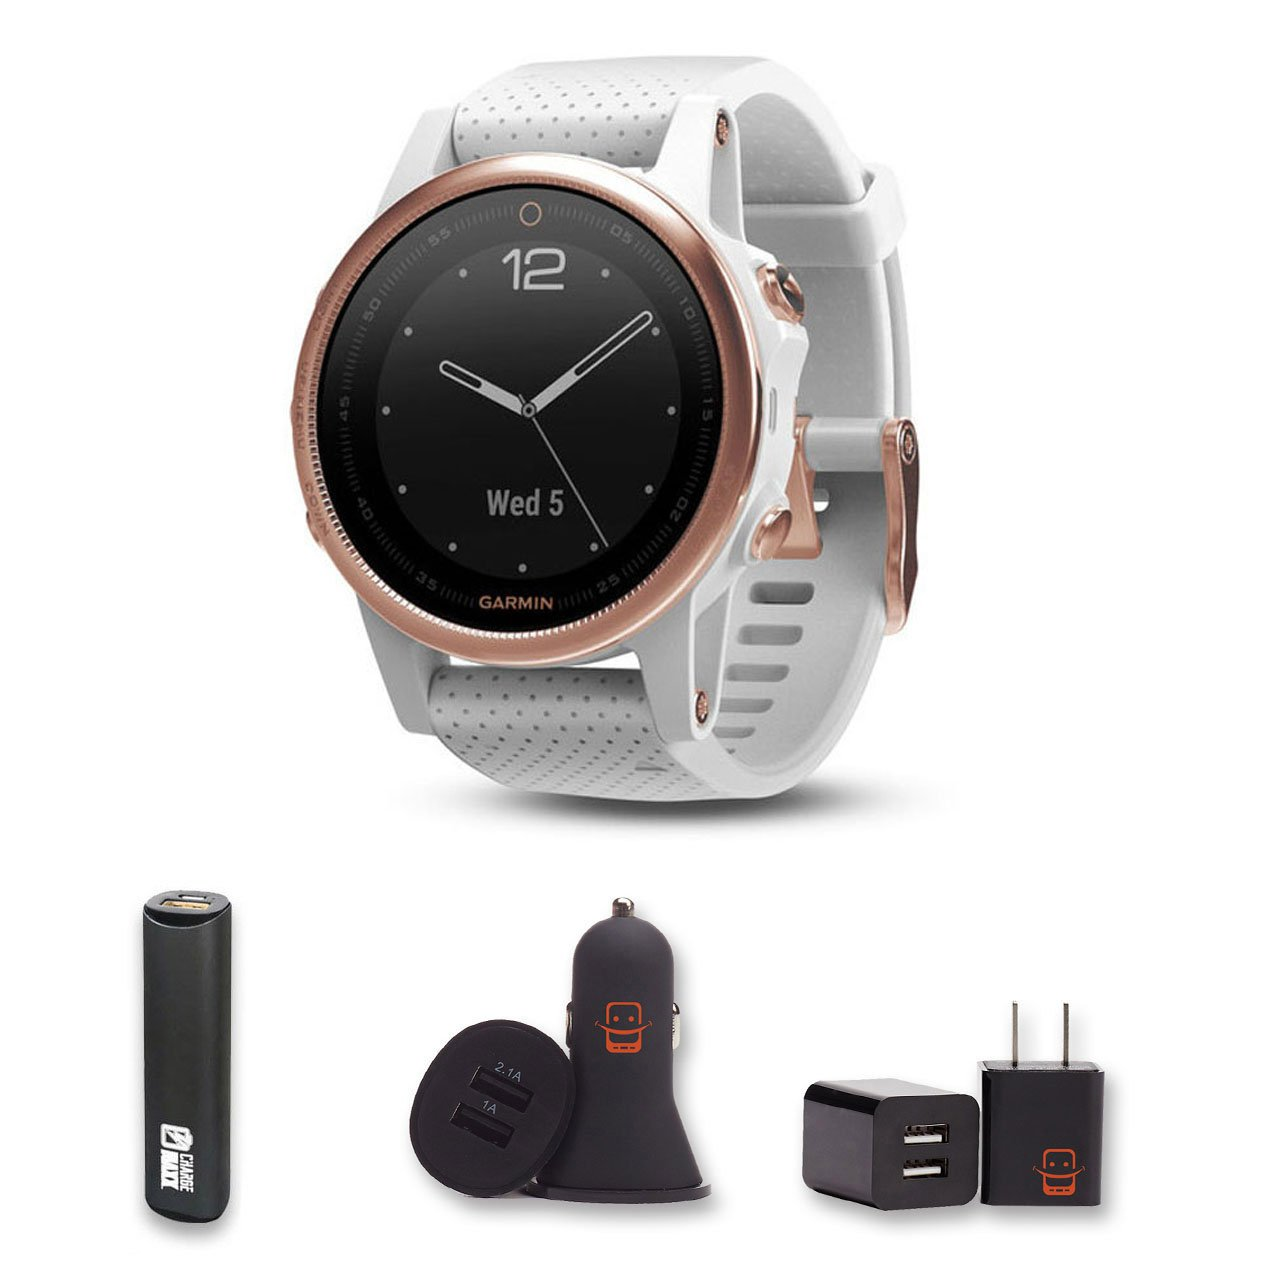 Garmin Fenix 5S - Sapphire, (Rose Gold/White Band) Bundle with PowerBank + USB Car Charger + USB Wall Charger (4 Items)